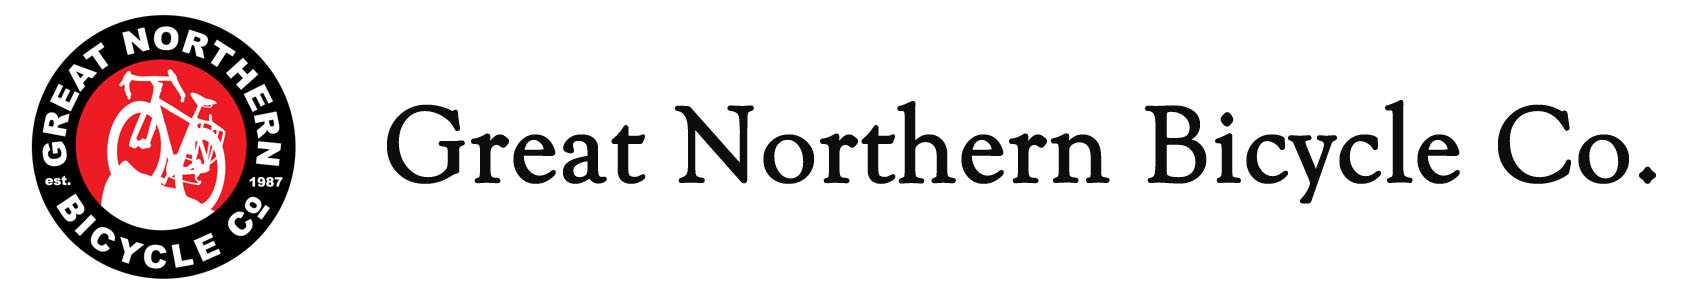 Great Northern Bicycle Company - Fargo Bike Shop